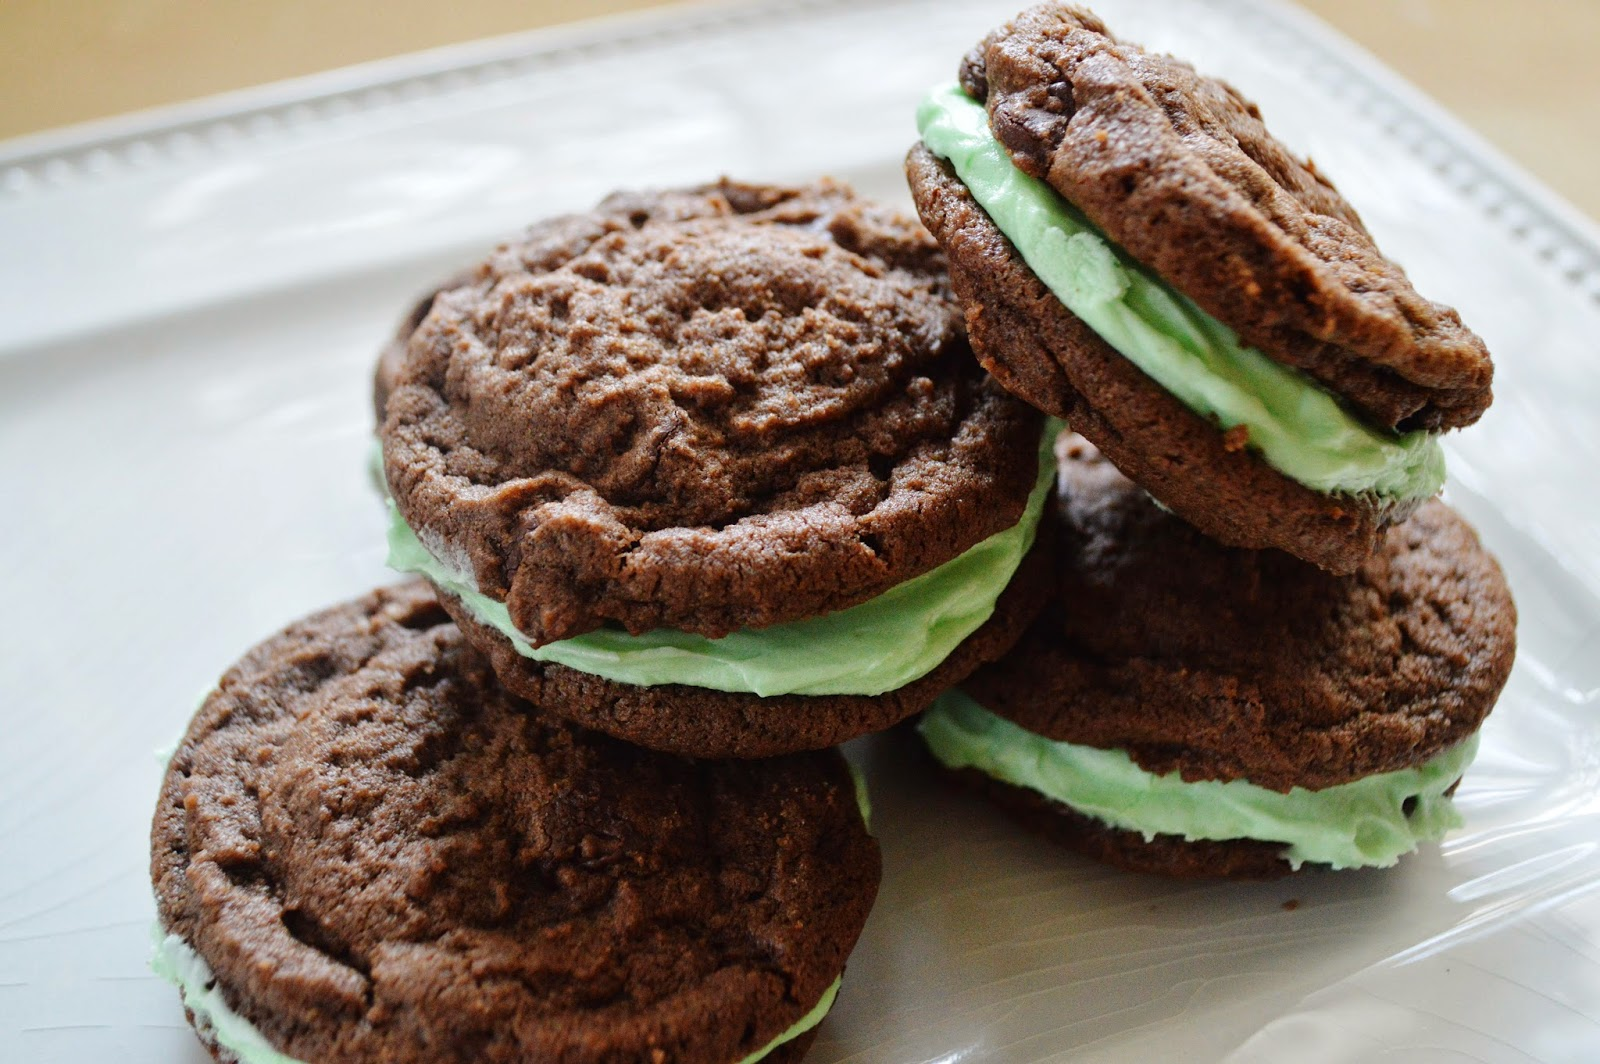 The Art of Comfort Baking: Double Chocolate Chip Cookie Sandwiches